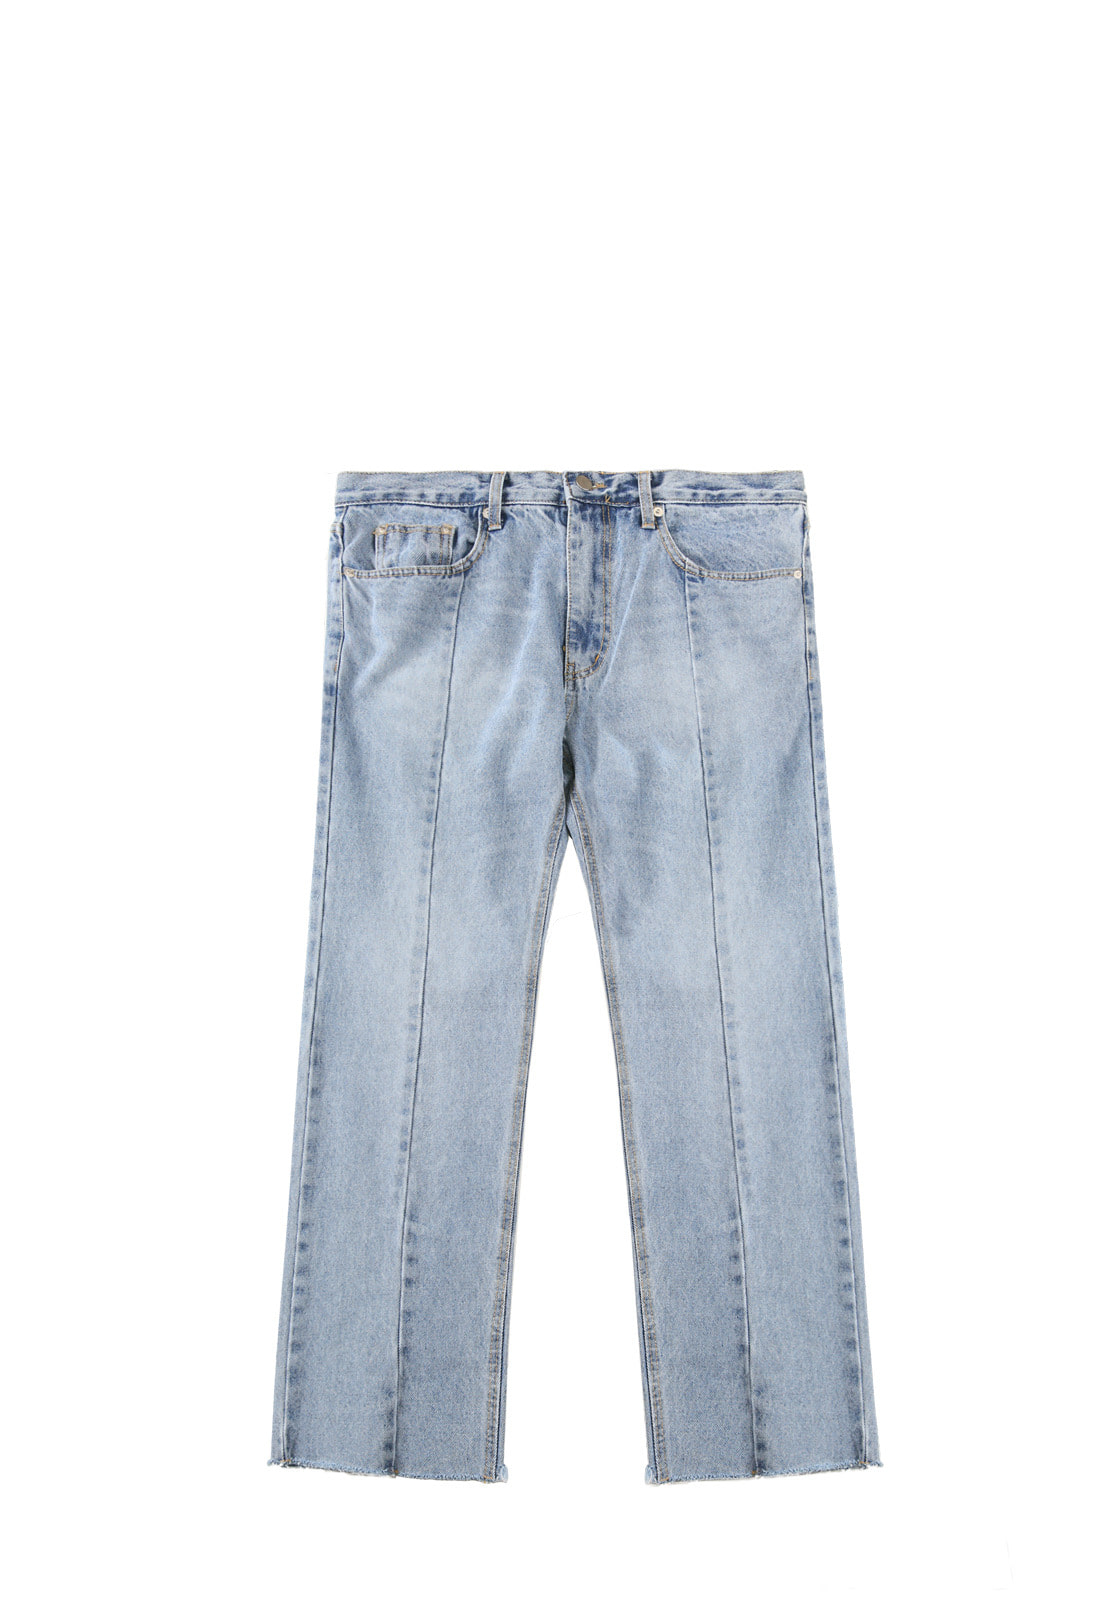 V244 PANEL WIDE DENIM PANTS  LIGHT BLUE